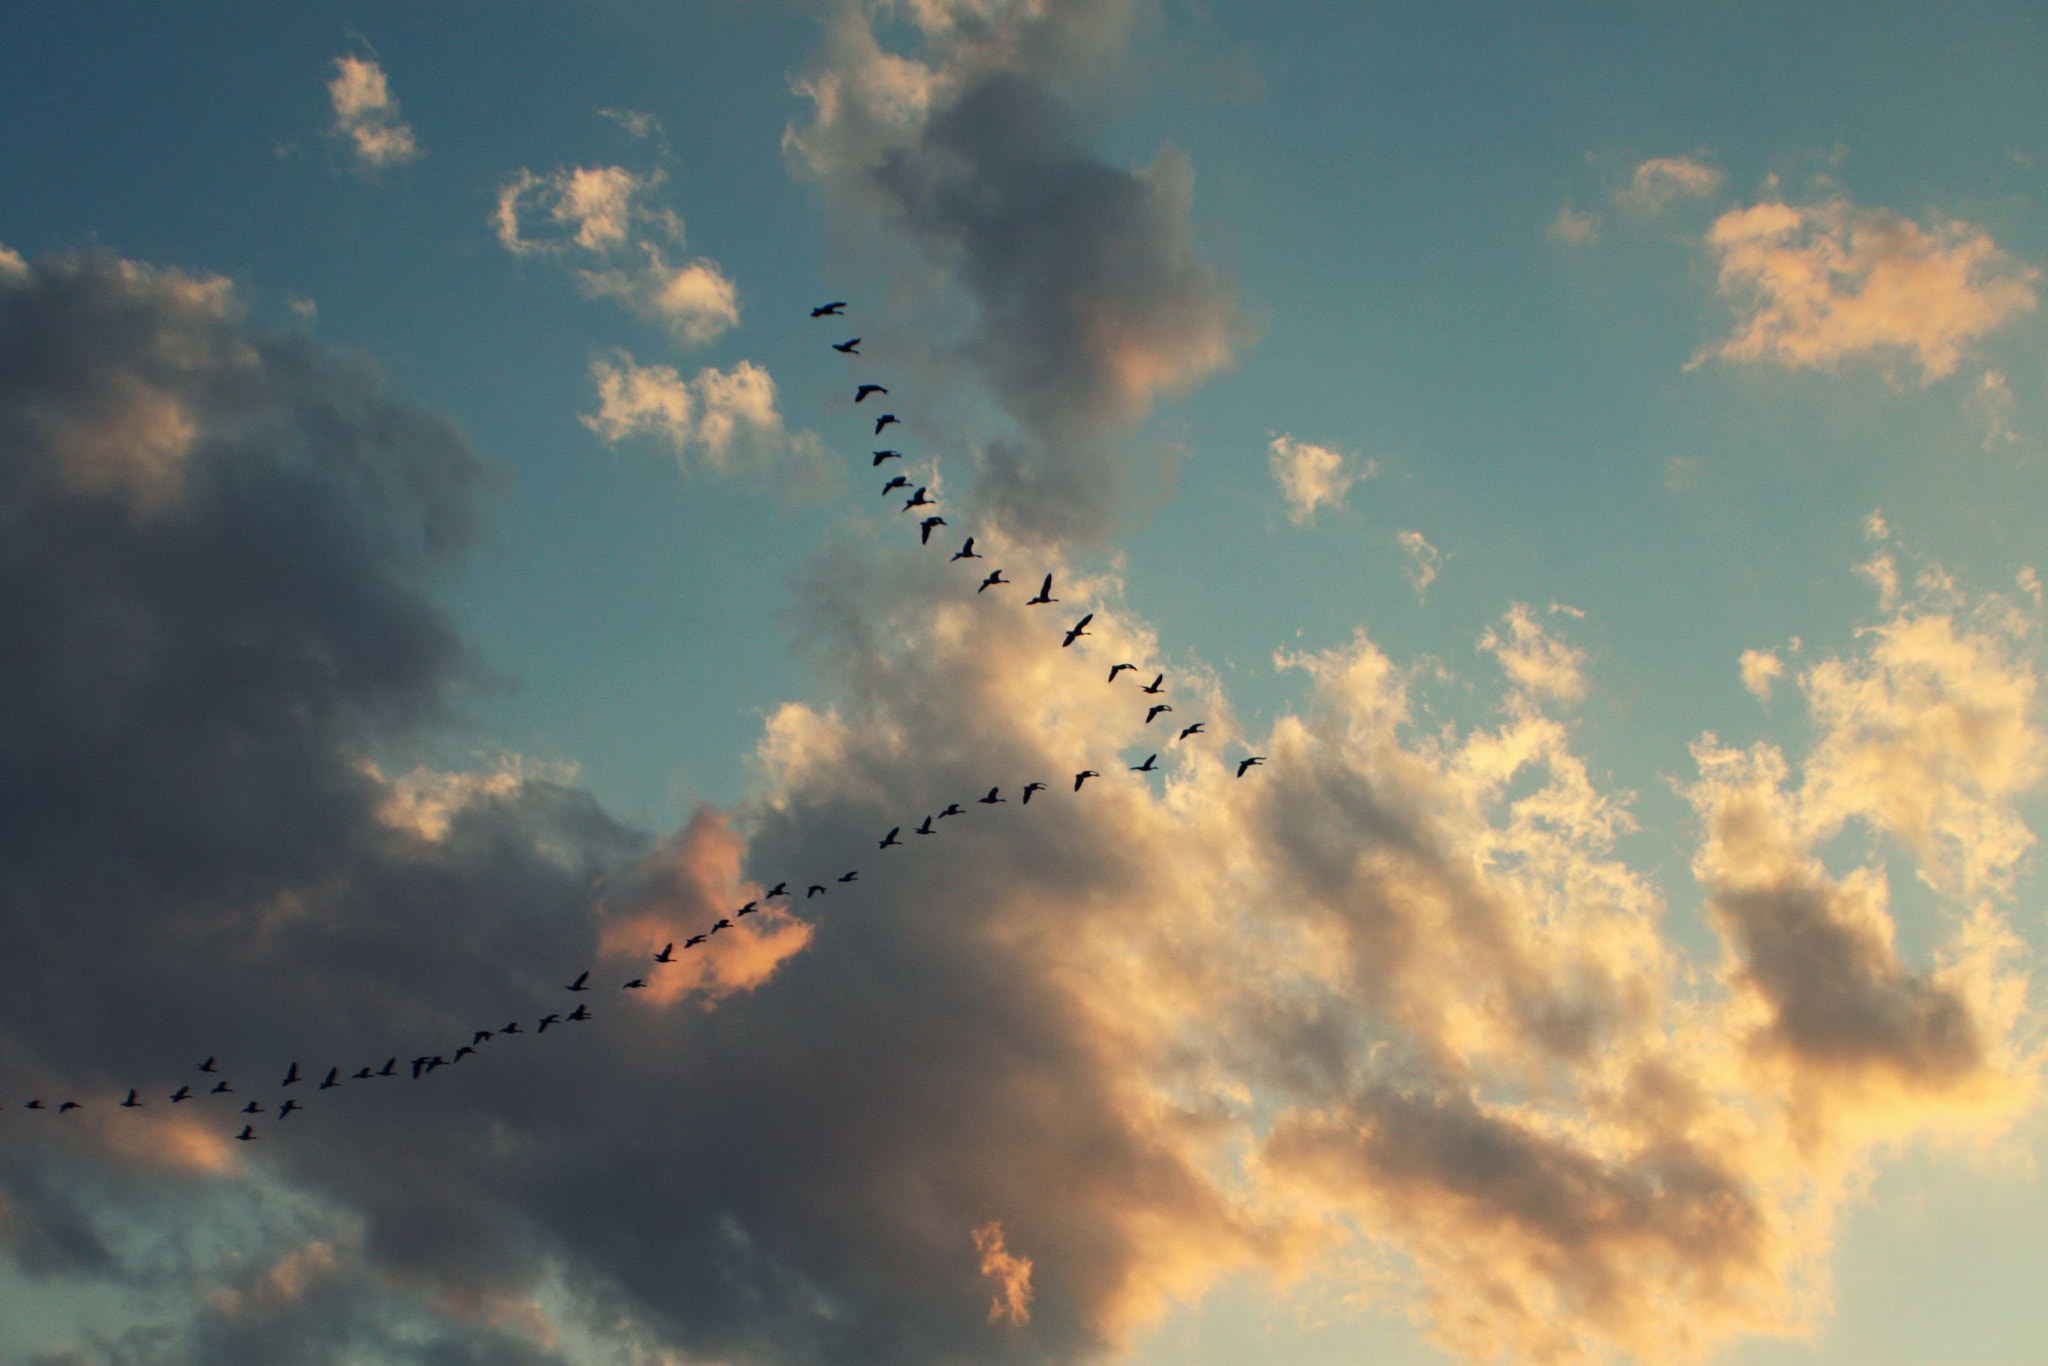 Photograph Flying in the sky  by Amber  McBride  on 500px